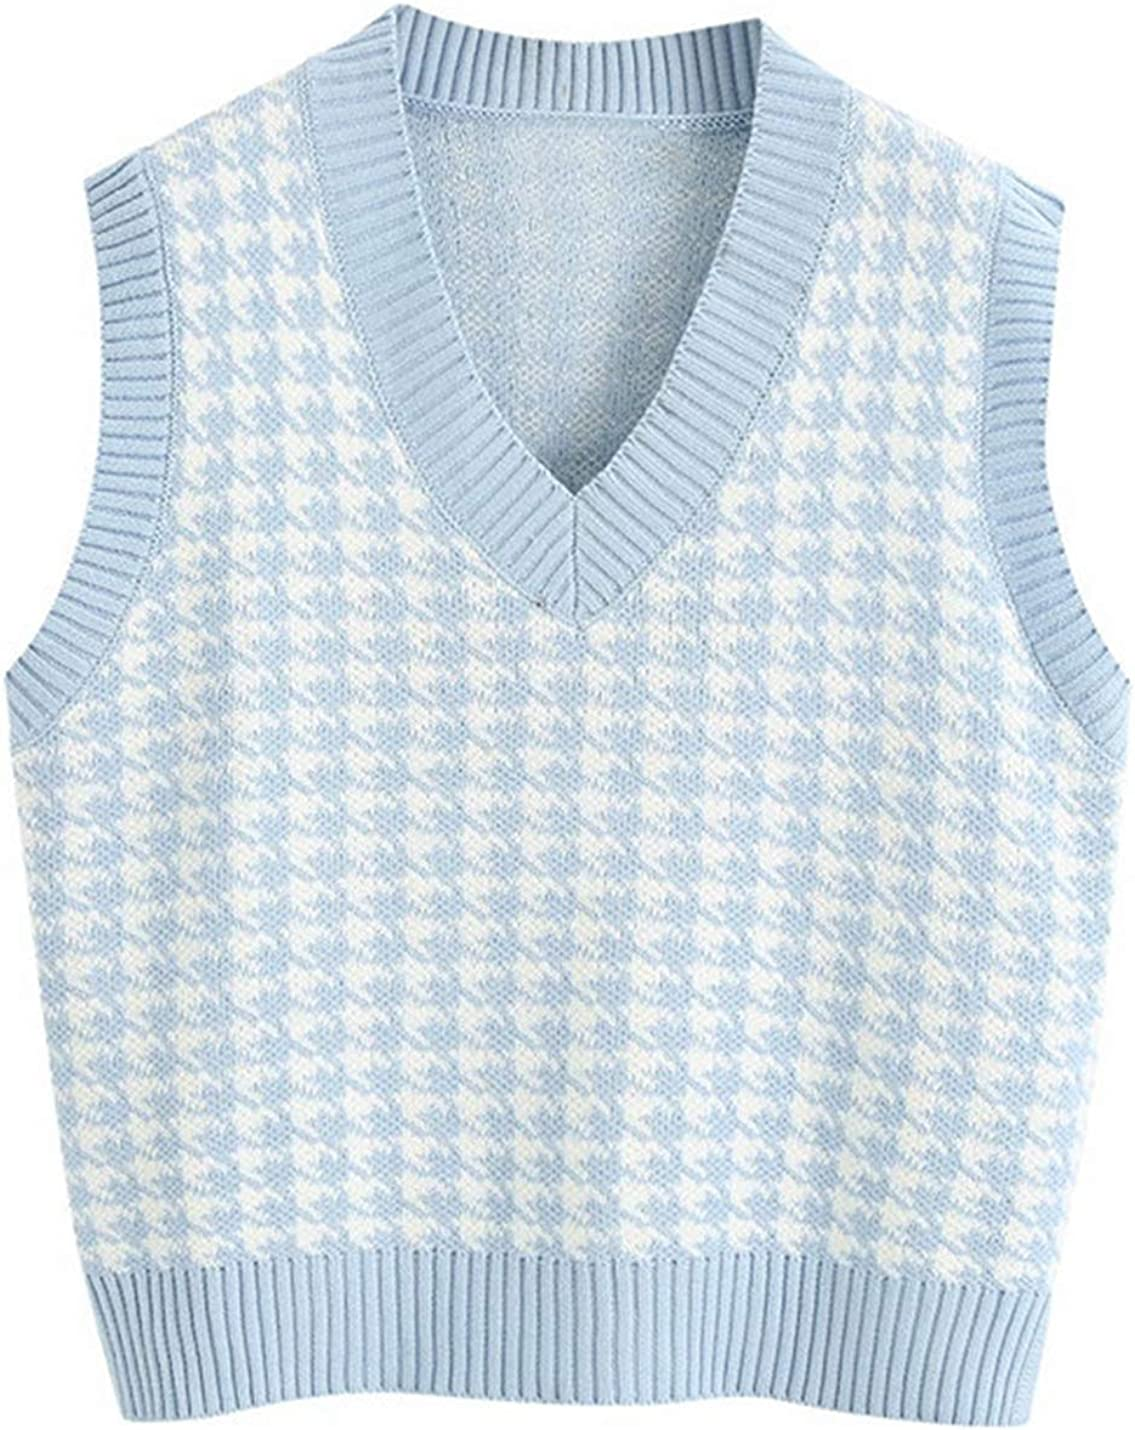 Jenkoon Women's Stylish Houndstooth Super sale period limited Free shipping on posting reviews Knit Vest Sweater V-Neck Pre